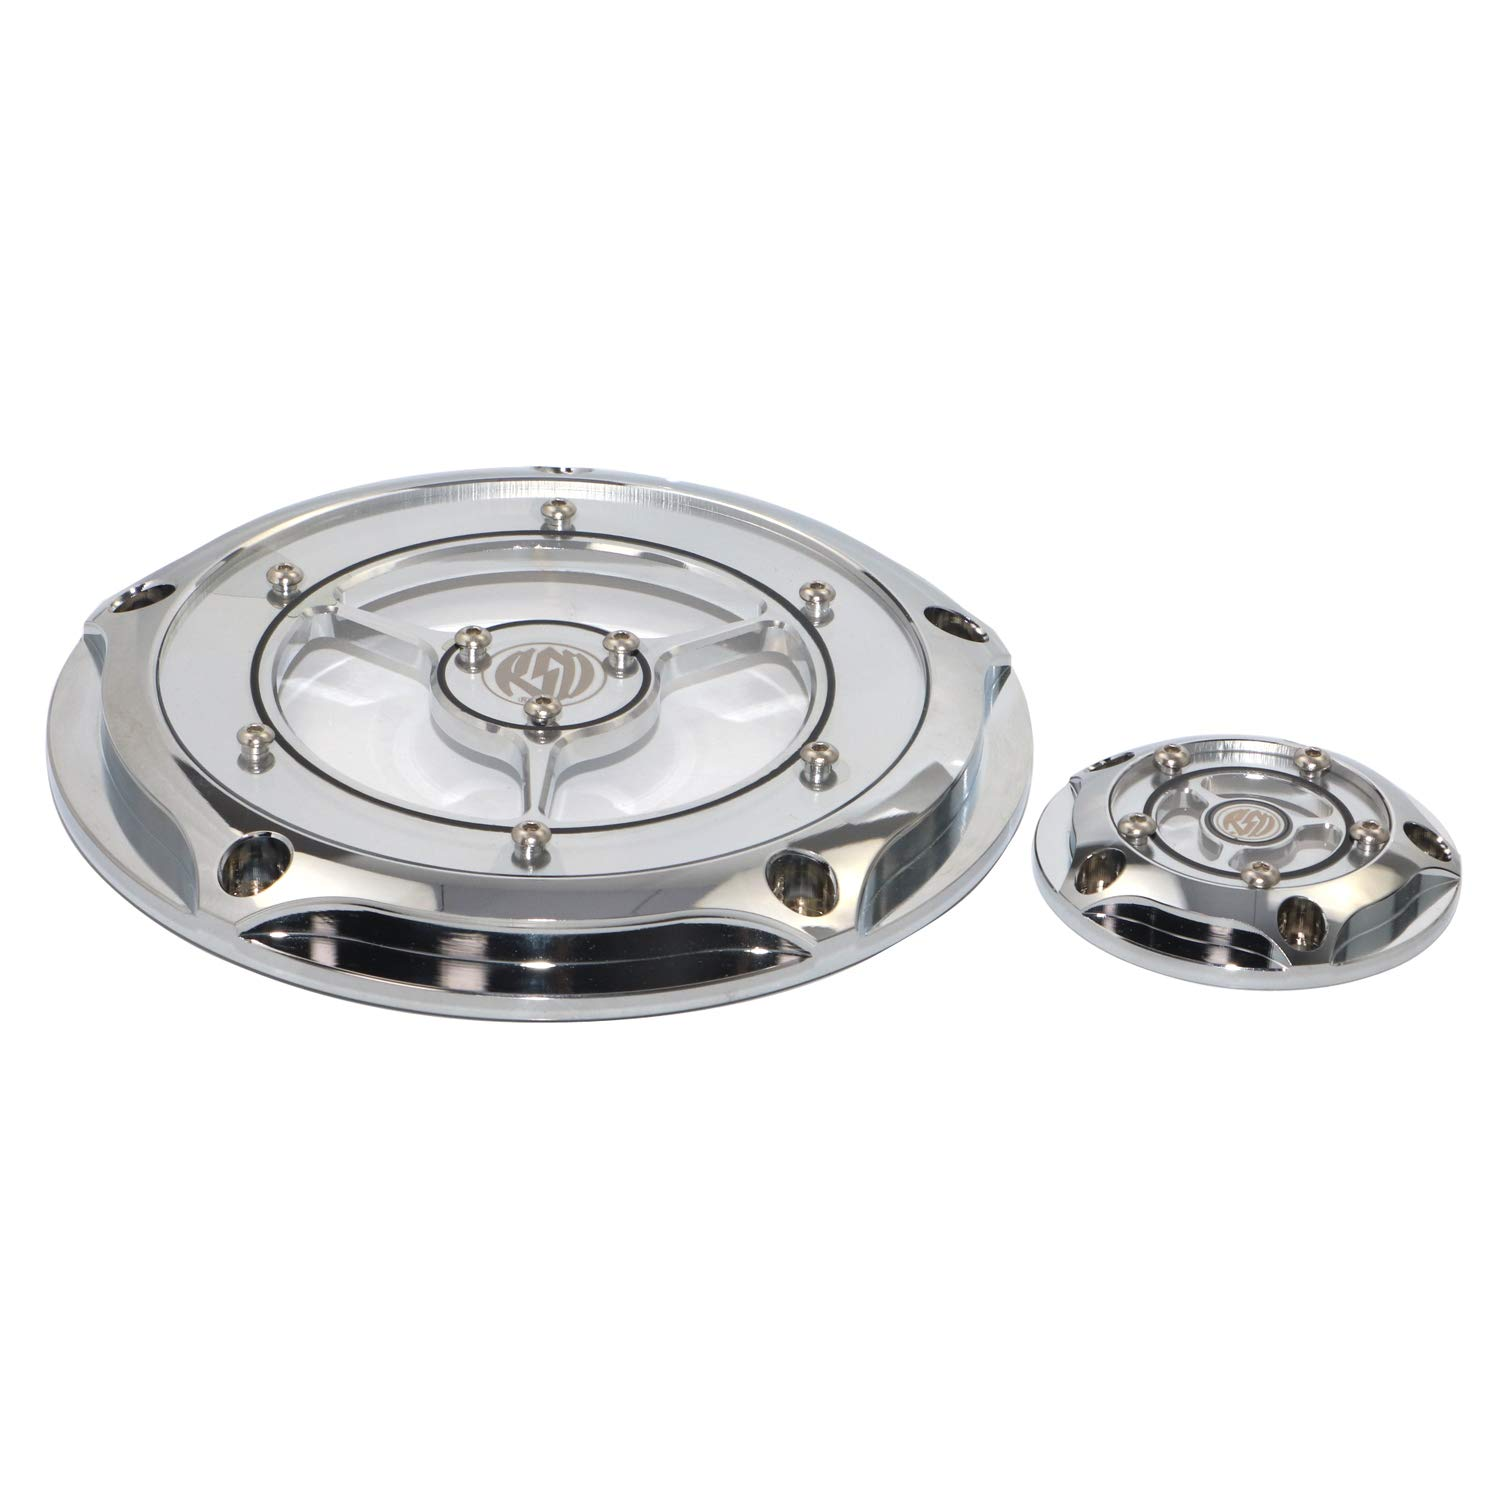 Chrome Clear Derdy Timing Timer Cover for Harley Motorcycle Models Road King Street Glide Dyna Softail